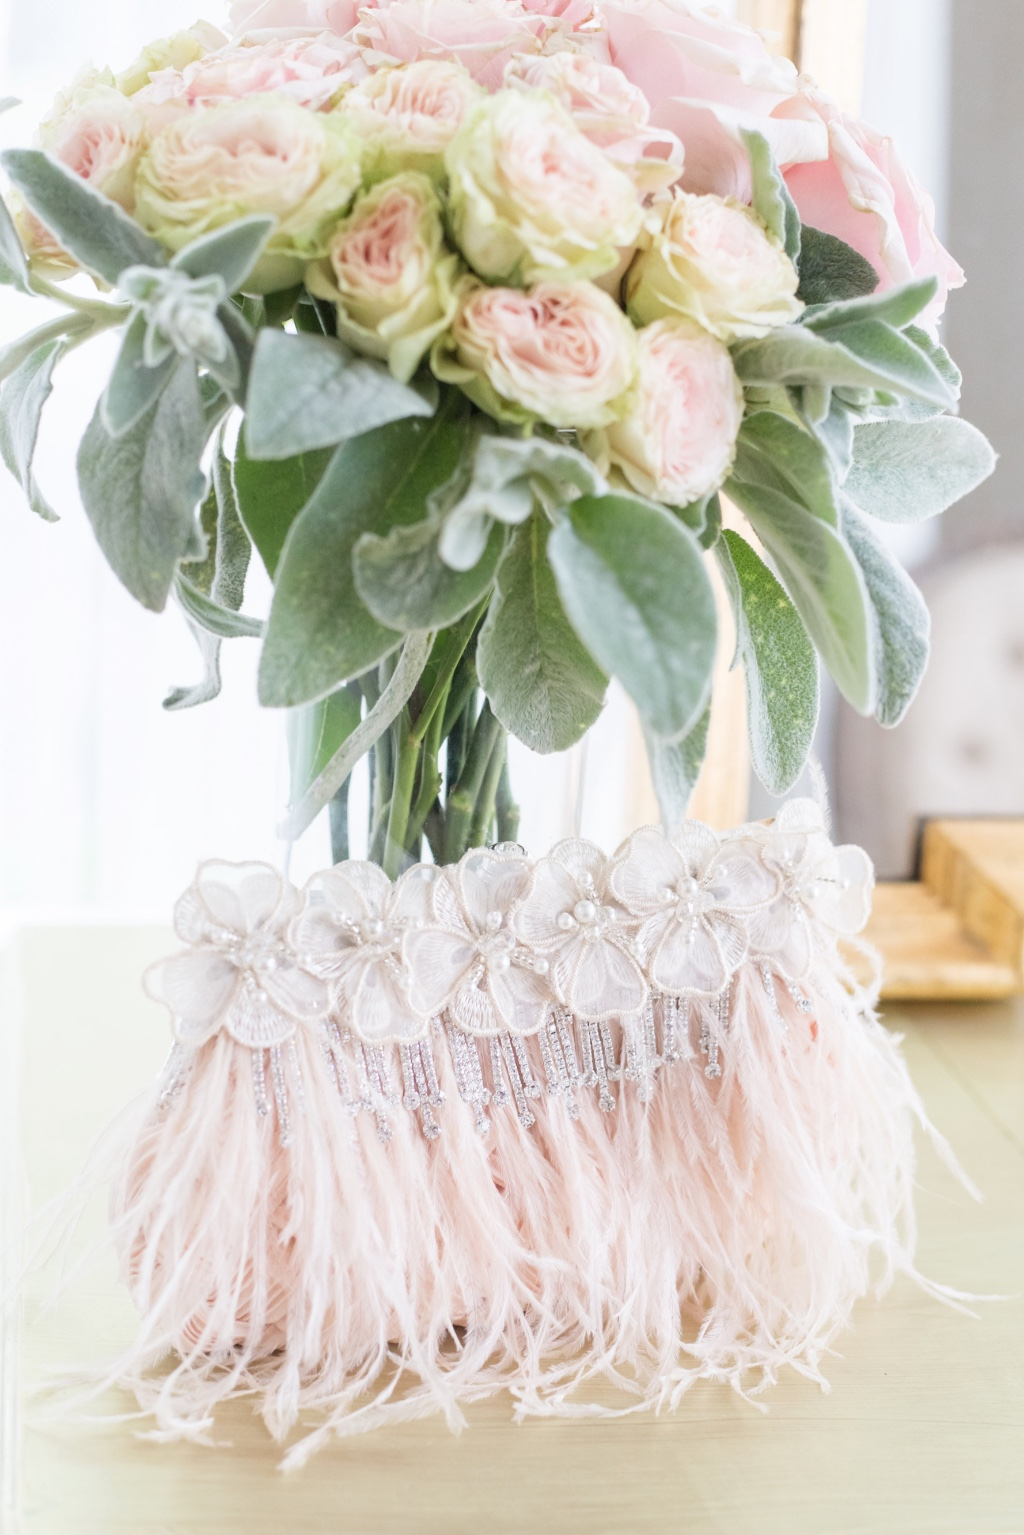 Blush feathers and rhinestone details are a must have for this glamorous bridal clutch